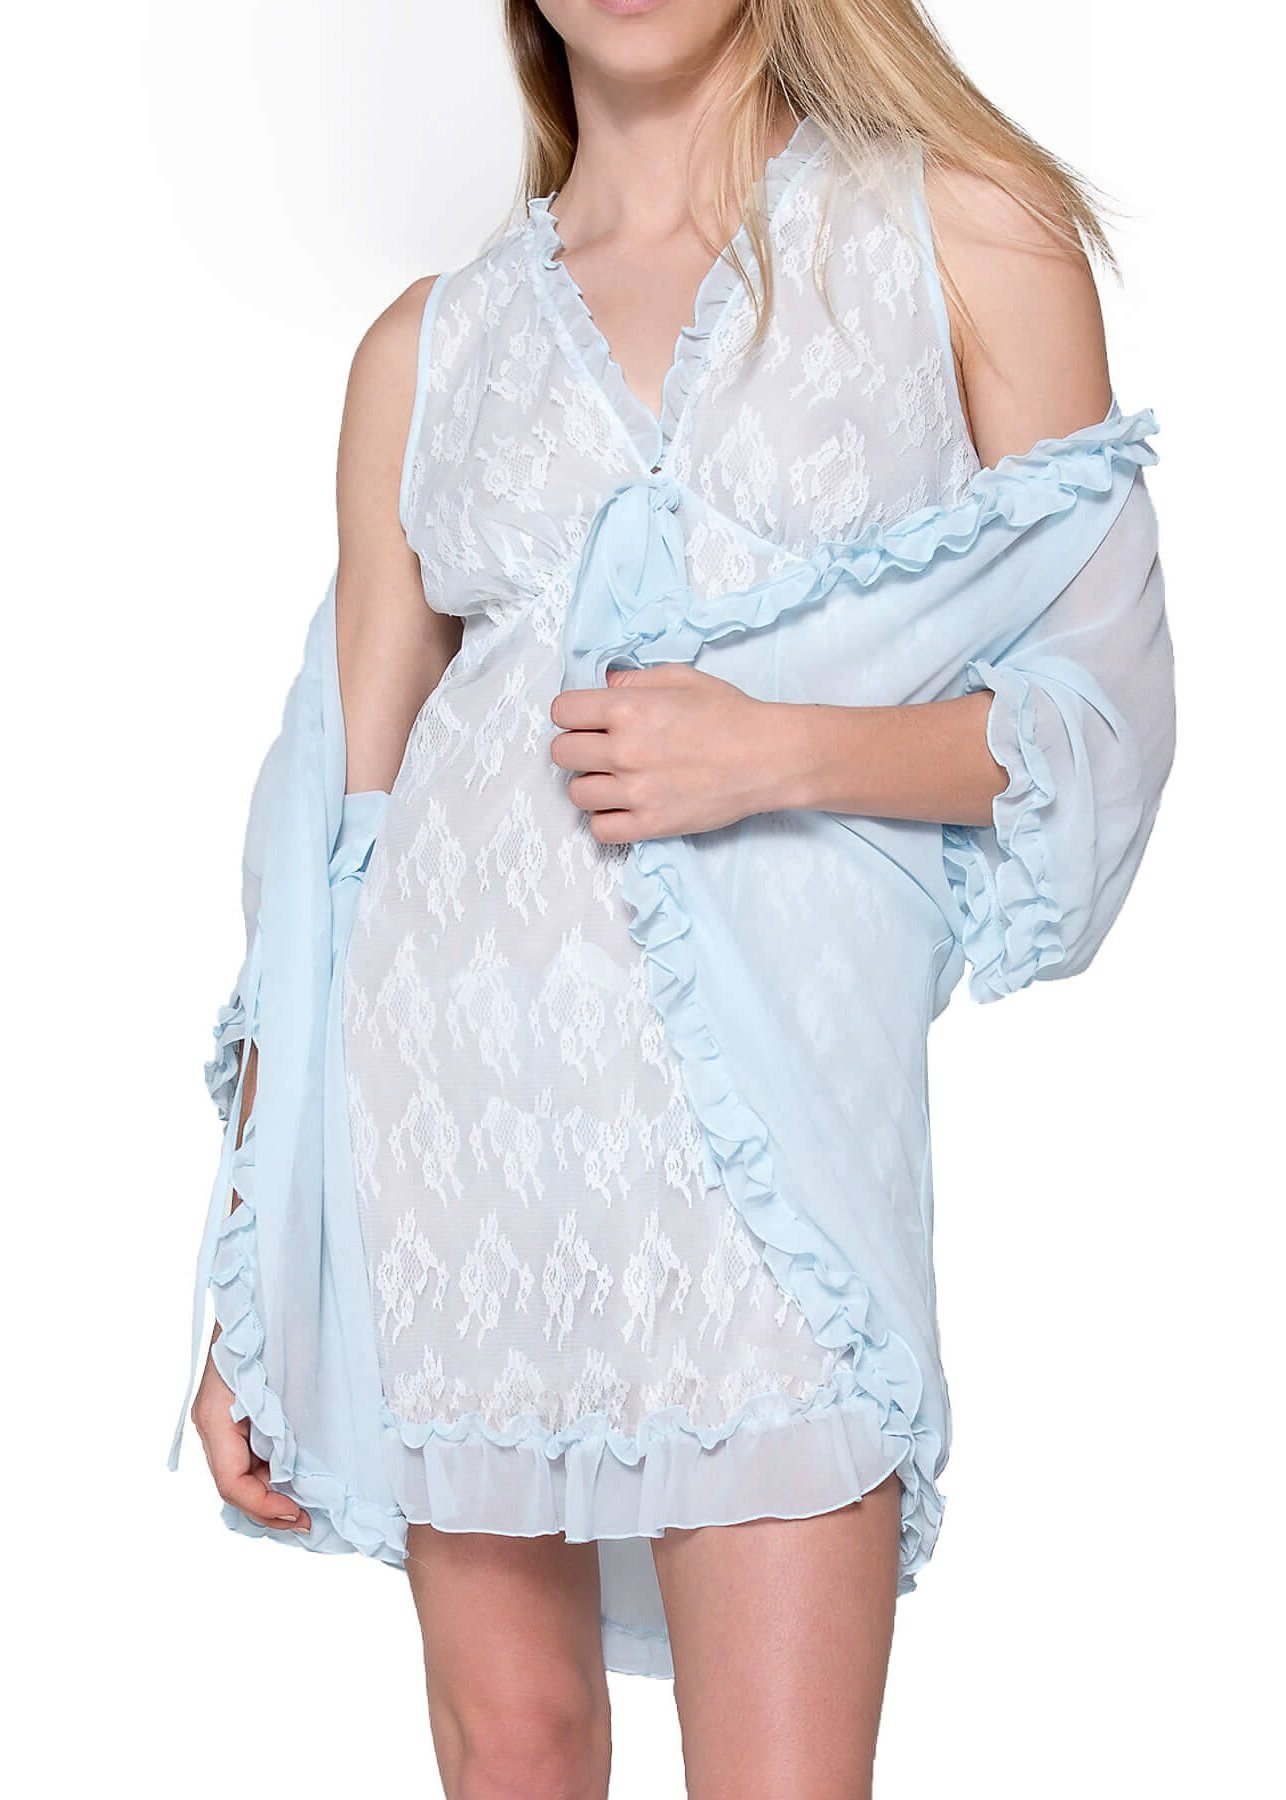 Chantilly Short Nightgown and Cover Up - Cloud Blue Mystique Intimates